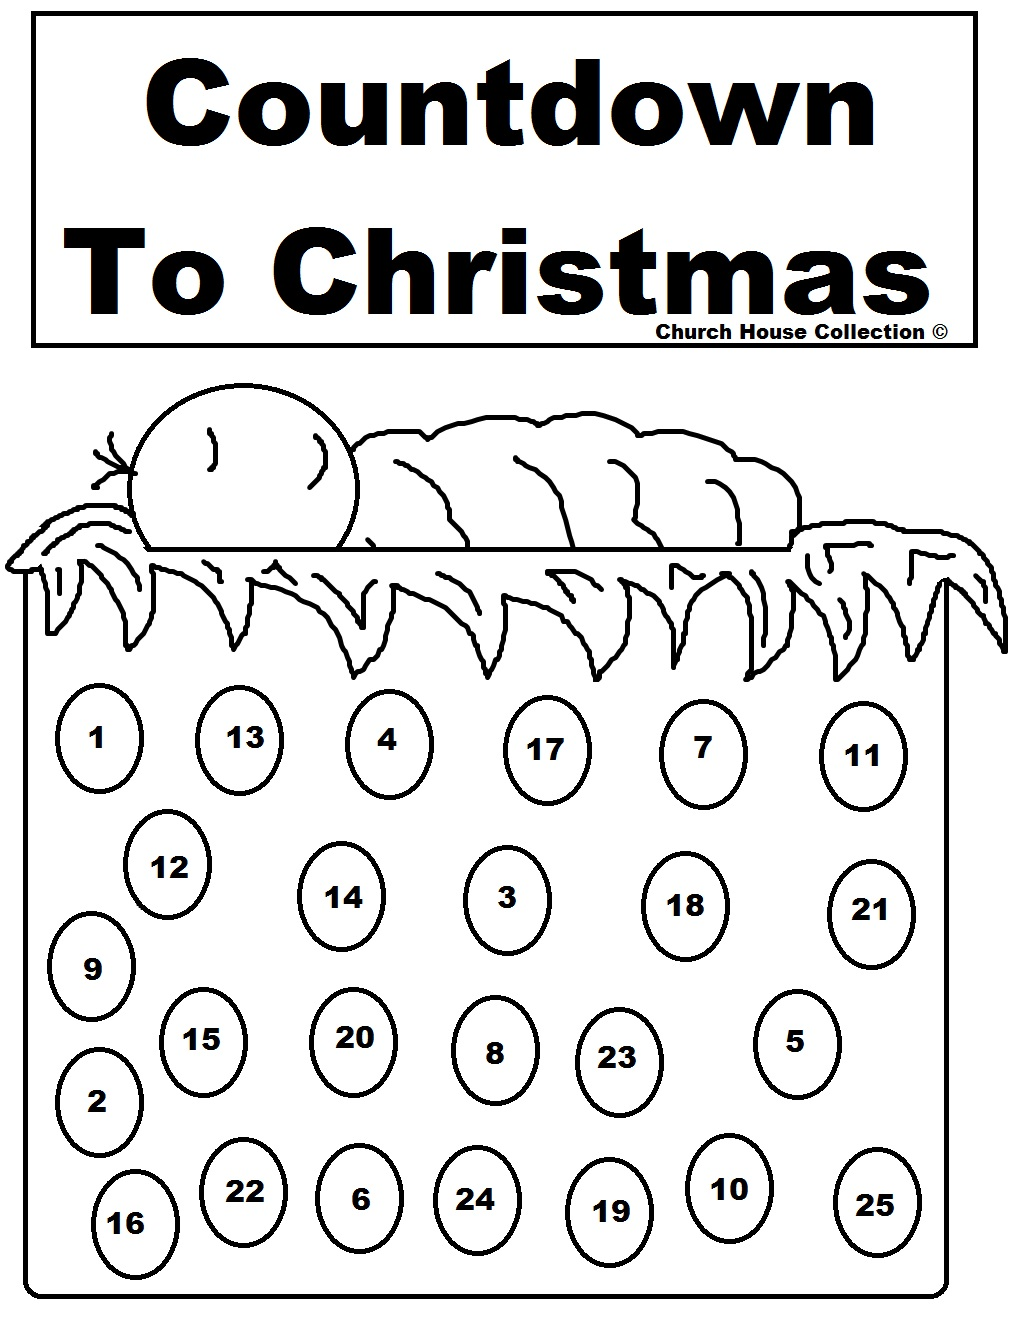 calendariucom nativity advent calendar countdown to color countdown to christmas - Advent Coloring Pages